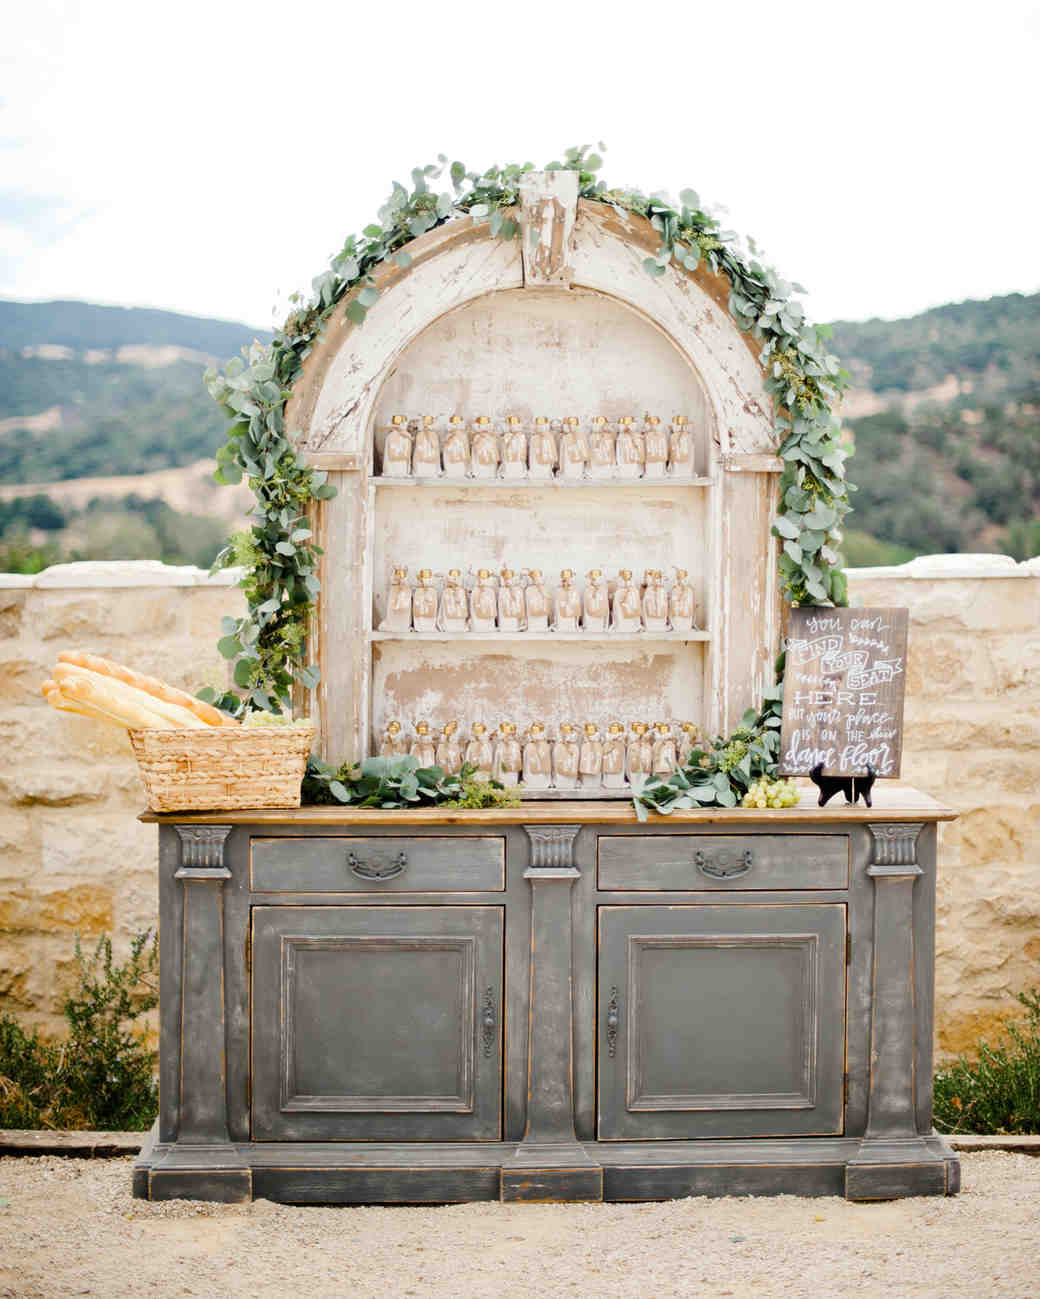 26 Rustic Wedding Ideas That Still Feel Elevated